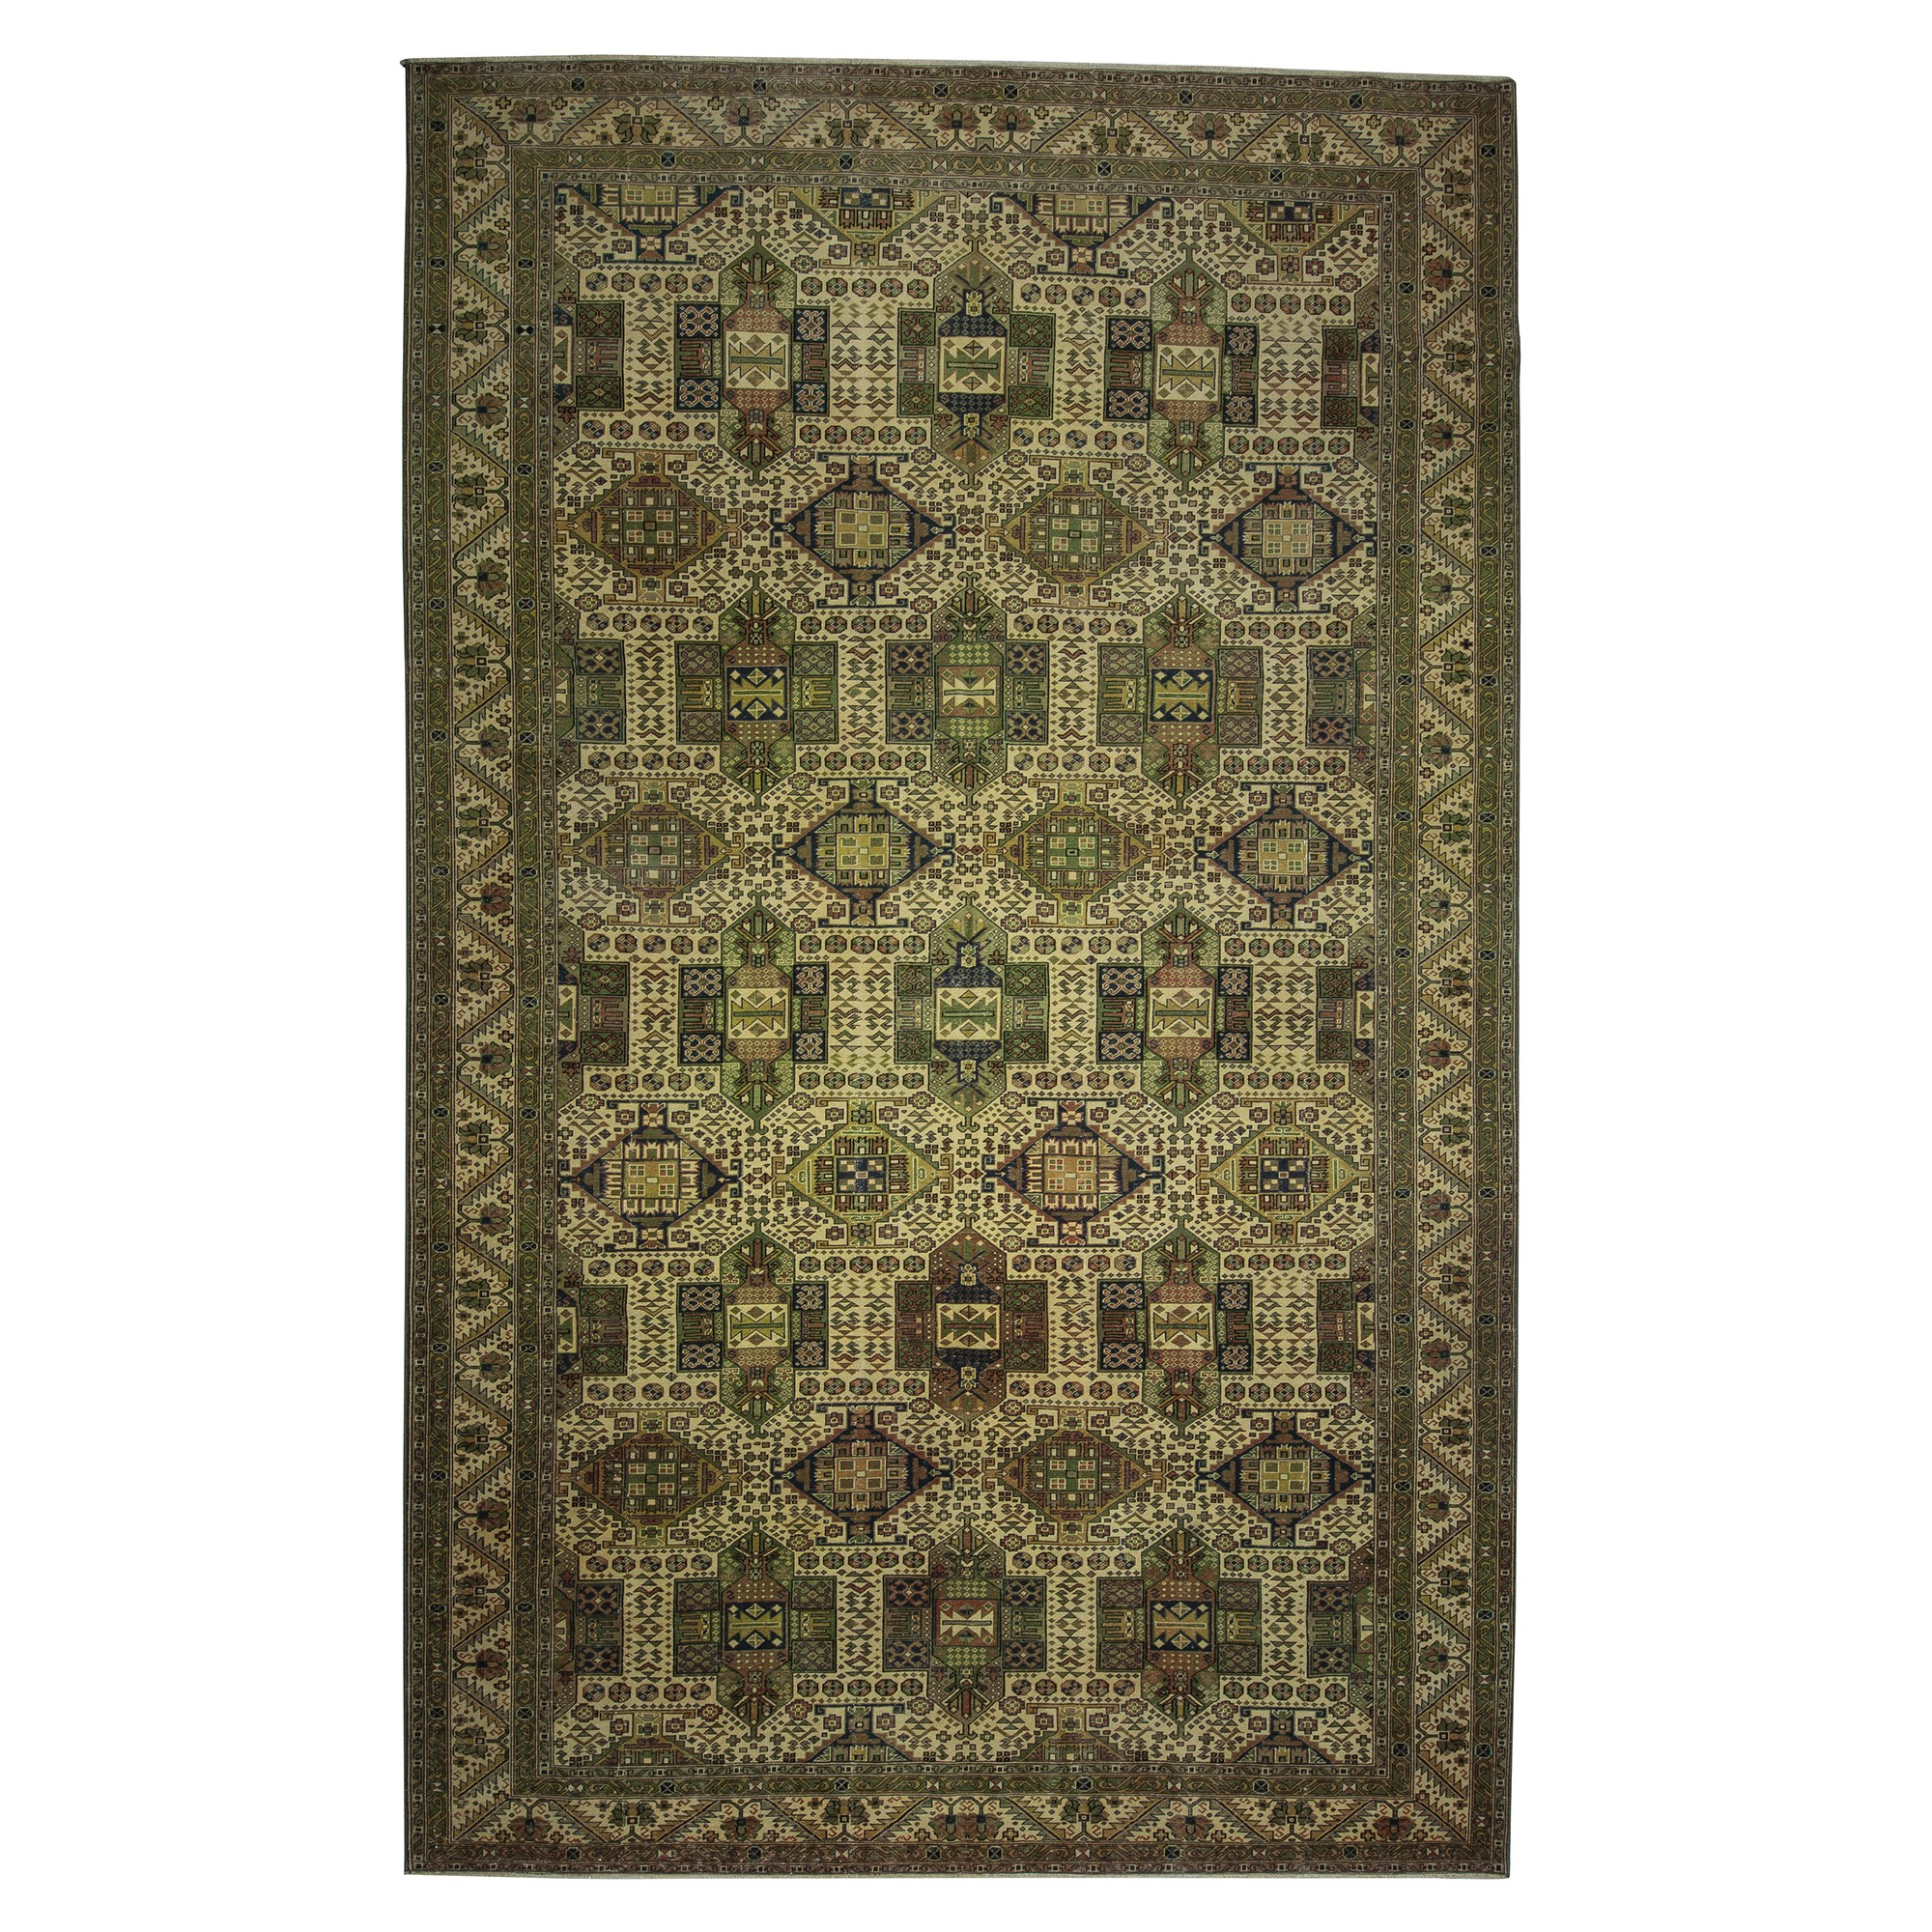 Oversized Natural Carpet Rug 8x13 Feet 252,407 - Turkish Carpet Rug